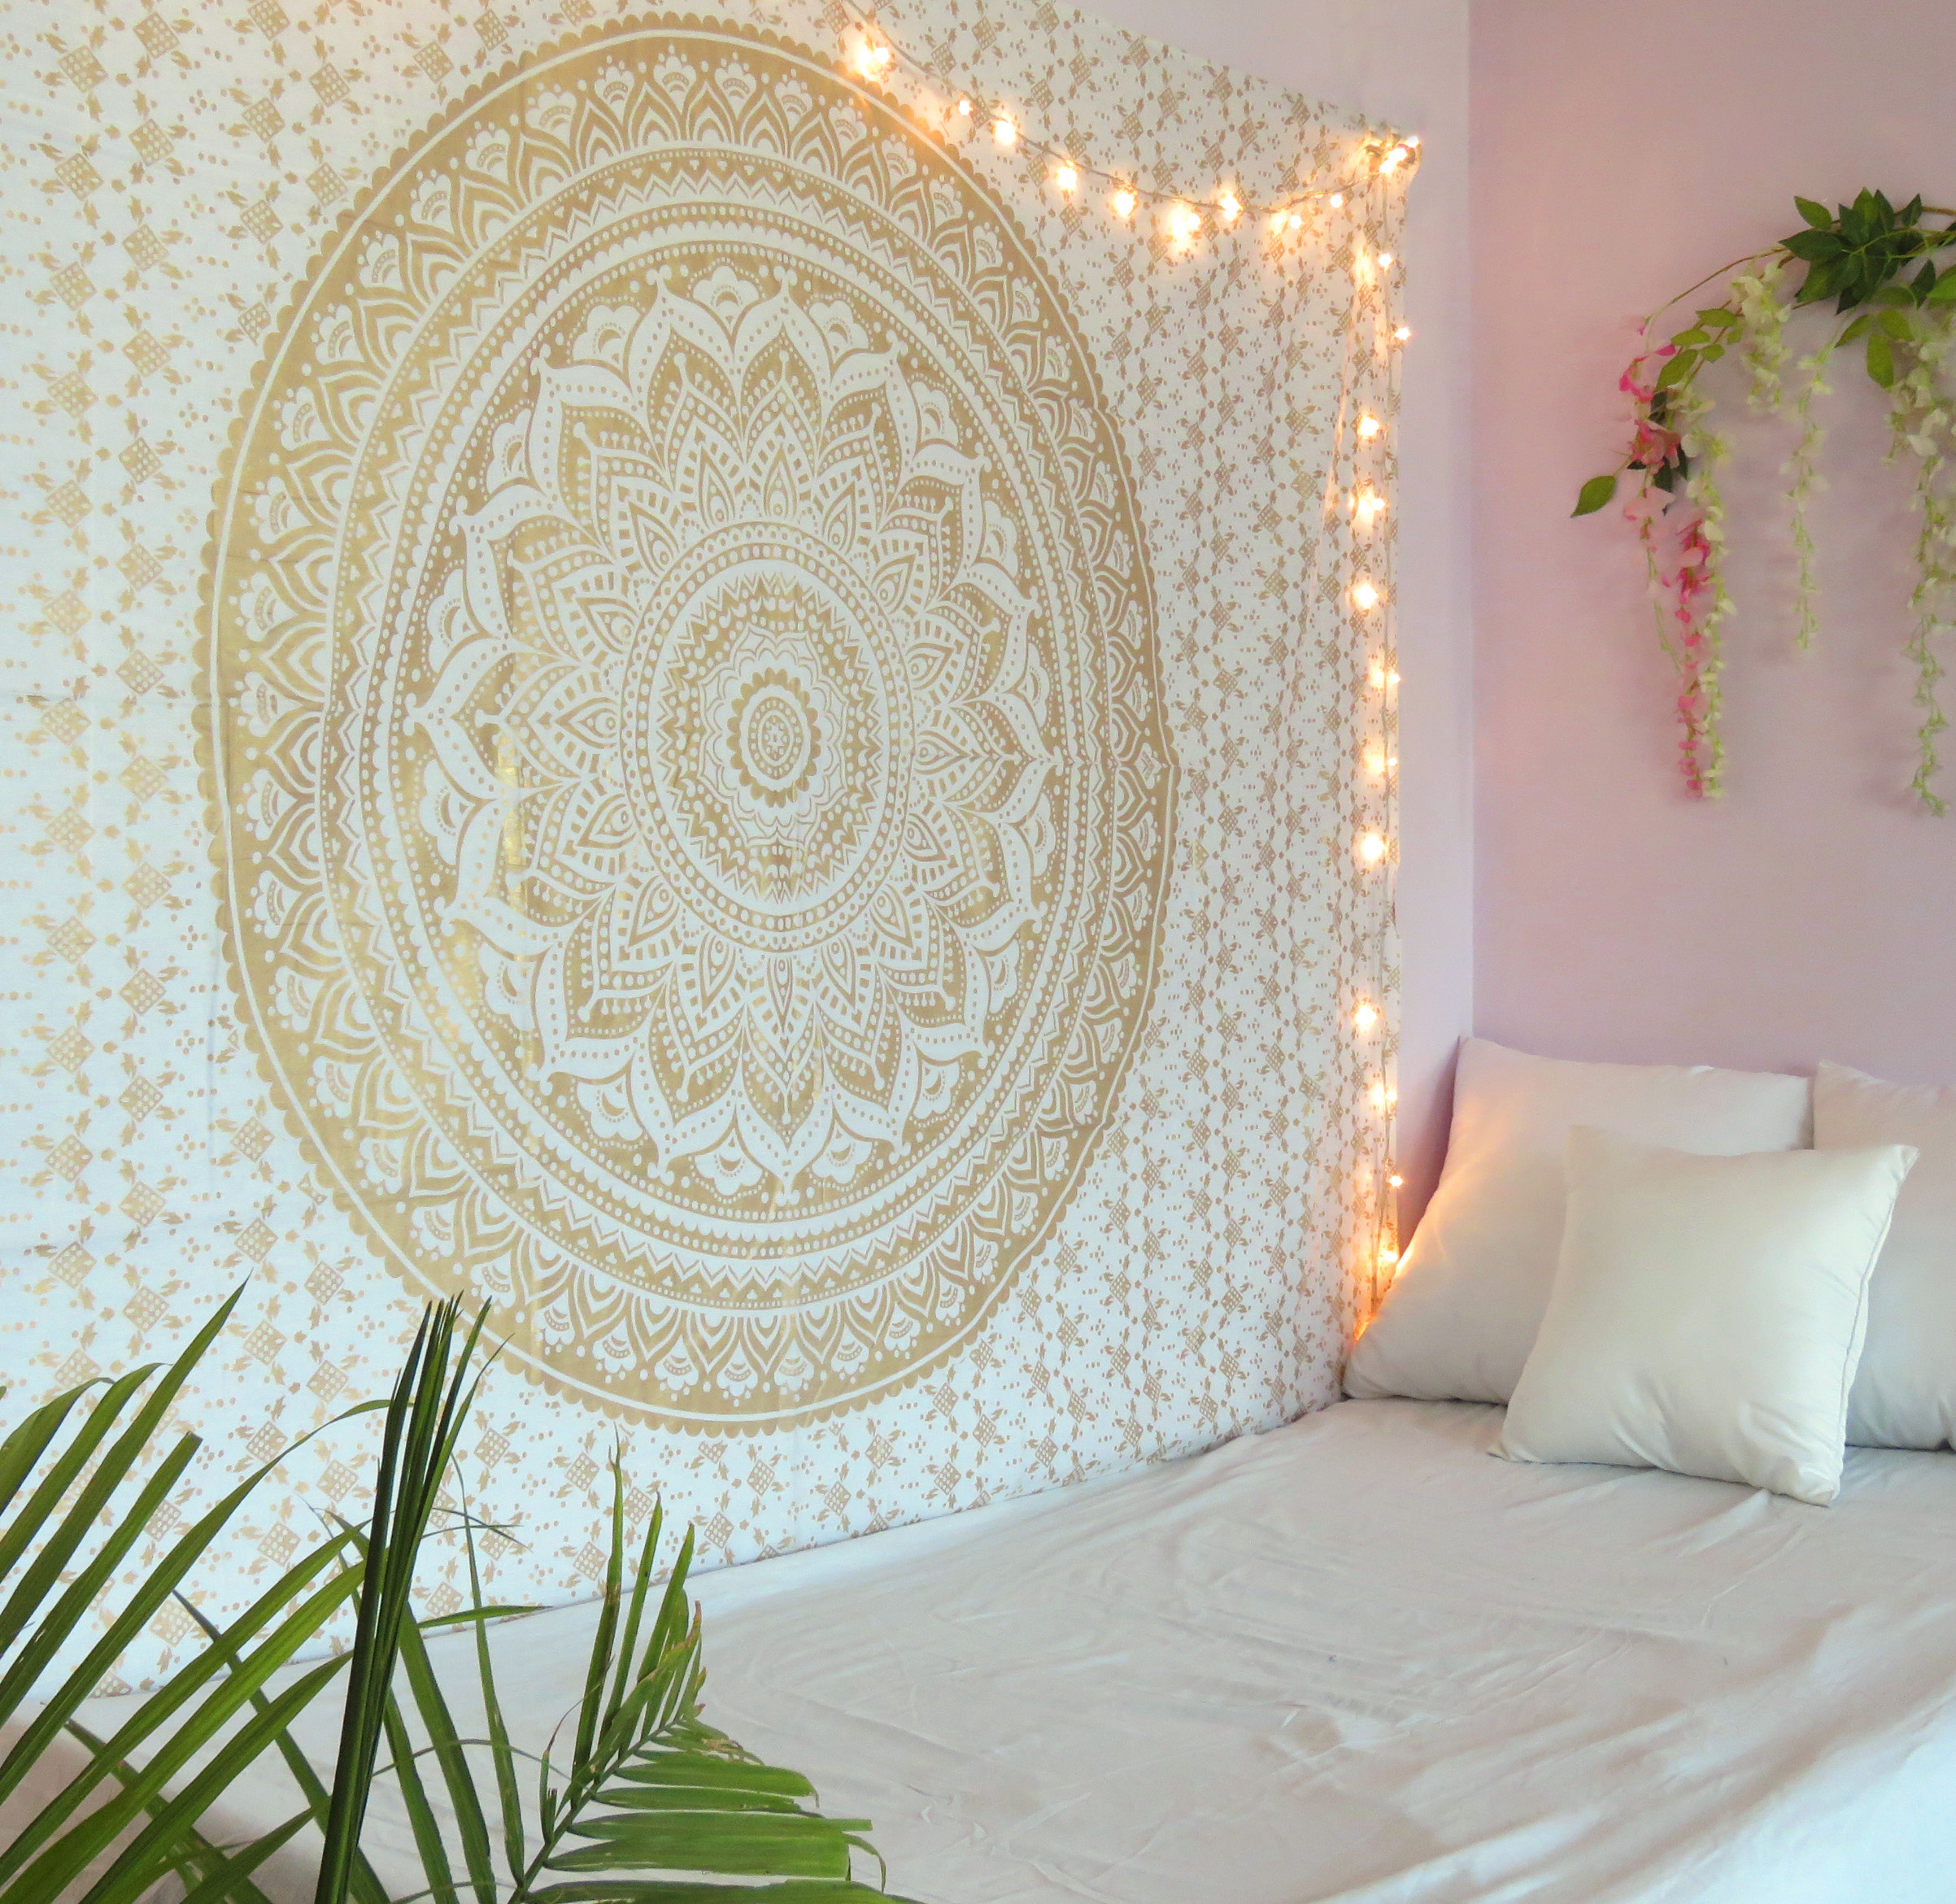 Golden Mandala Tapestry Wall Hanging Twin Size Boho Dorm Room Indian Ombre Tapestries Beach Blankets Picnic Throws Bedspread By Oussum Walmart Com Walmart Com